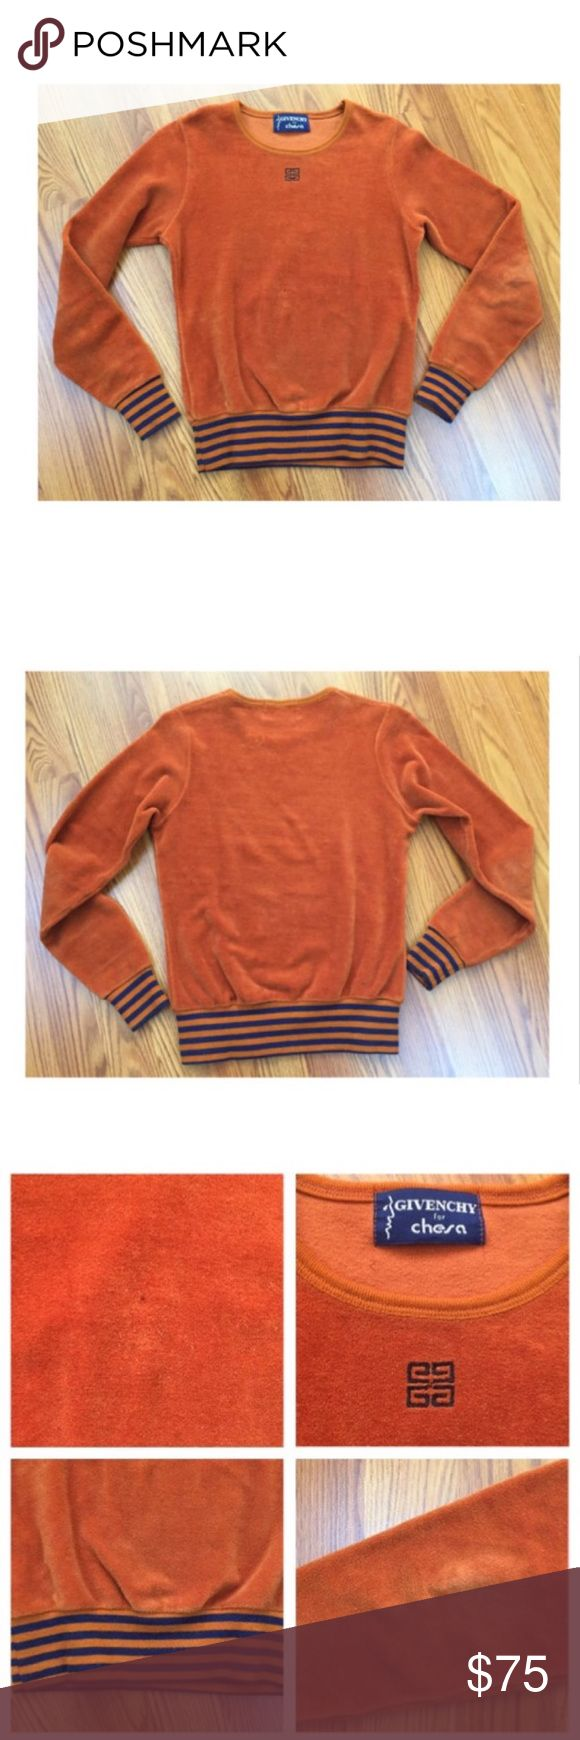 Vintage Givenchy Orange Form Fitting Sweater Super stylish burnt orange / amber color sweater top by Givenchy circa the 1970s.  Soft, velour like material with stretch.  Banded cuffs and waist band with blue stripes.  Givenchy logo on front below neckline.  Small discoloration on material on front - does not take away from the cool factor of the top. Some slight fading in the elbows, stretch, and pilling from age, wear, and storage.  Otherwise, great vintage condition!  No size or material…